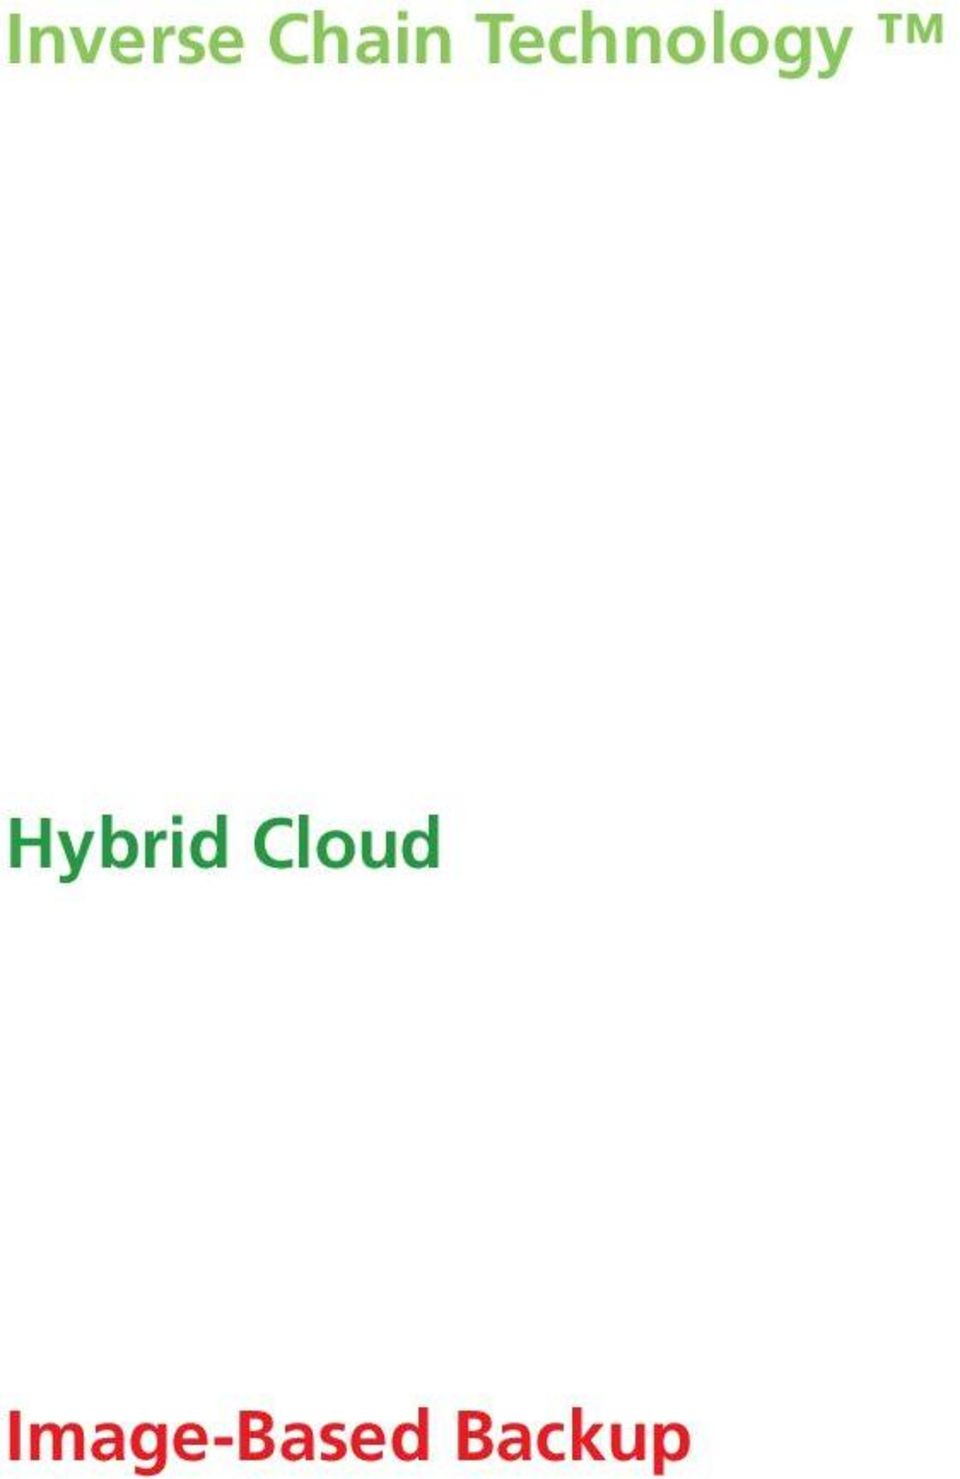 Hybrid Cloud Data is protected across the Local Area Network (LAN) to the Datto appliance and from there is automatically transmitted to the secure Datto cloud.